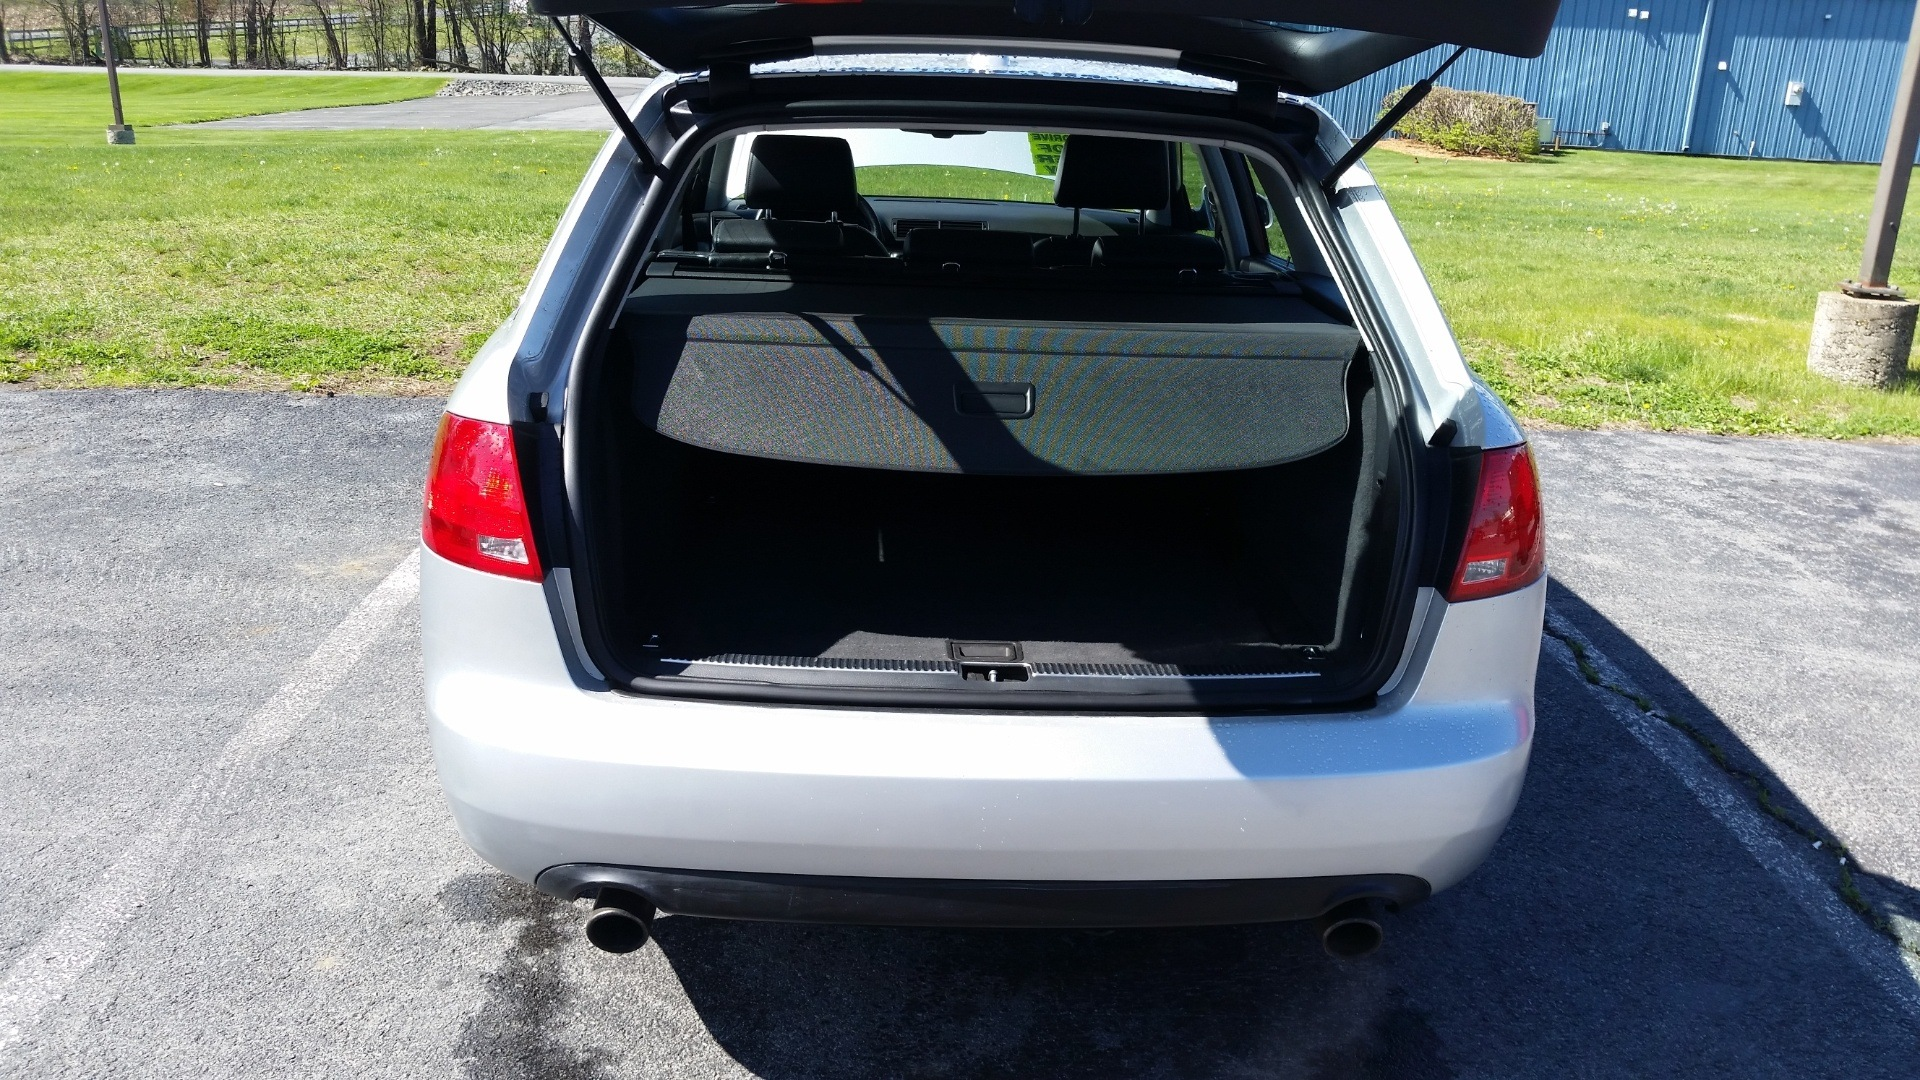 2006 Audi A4 Wagon in Middletown, New York